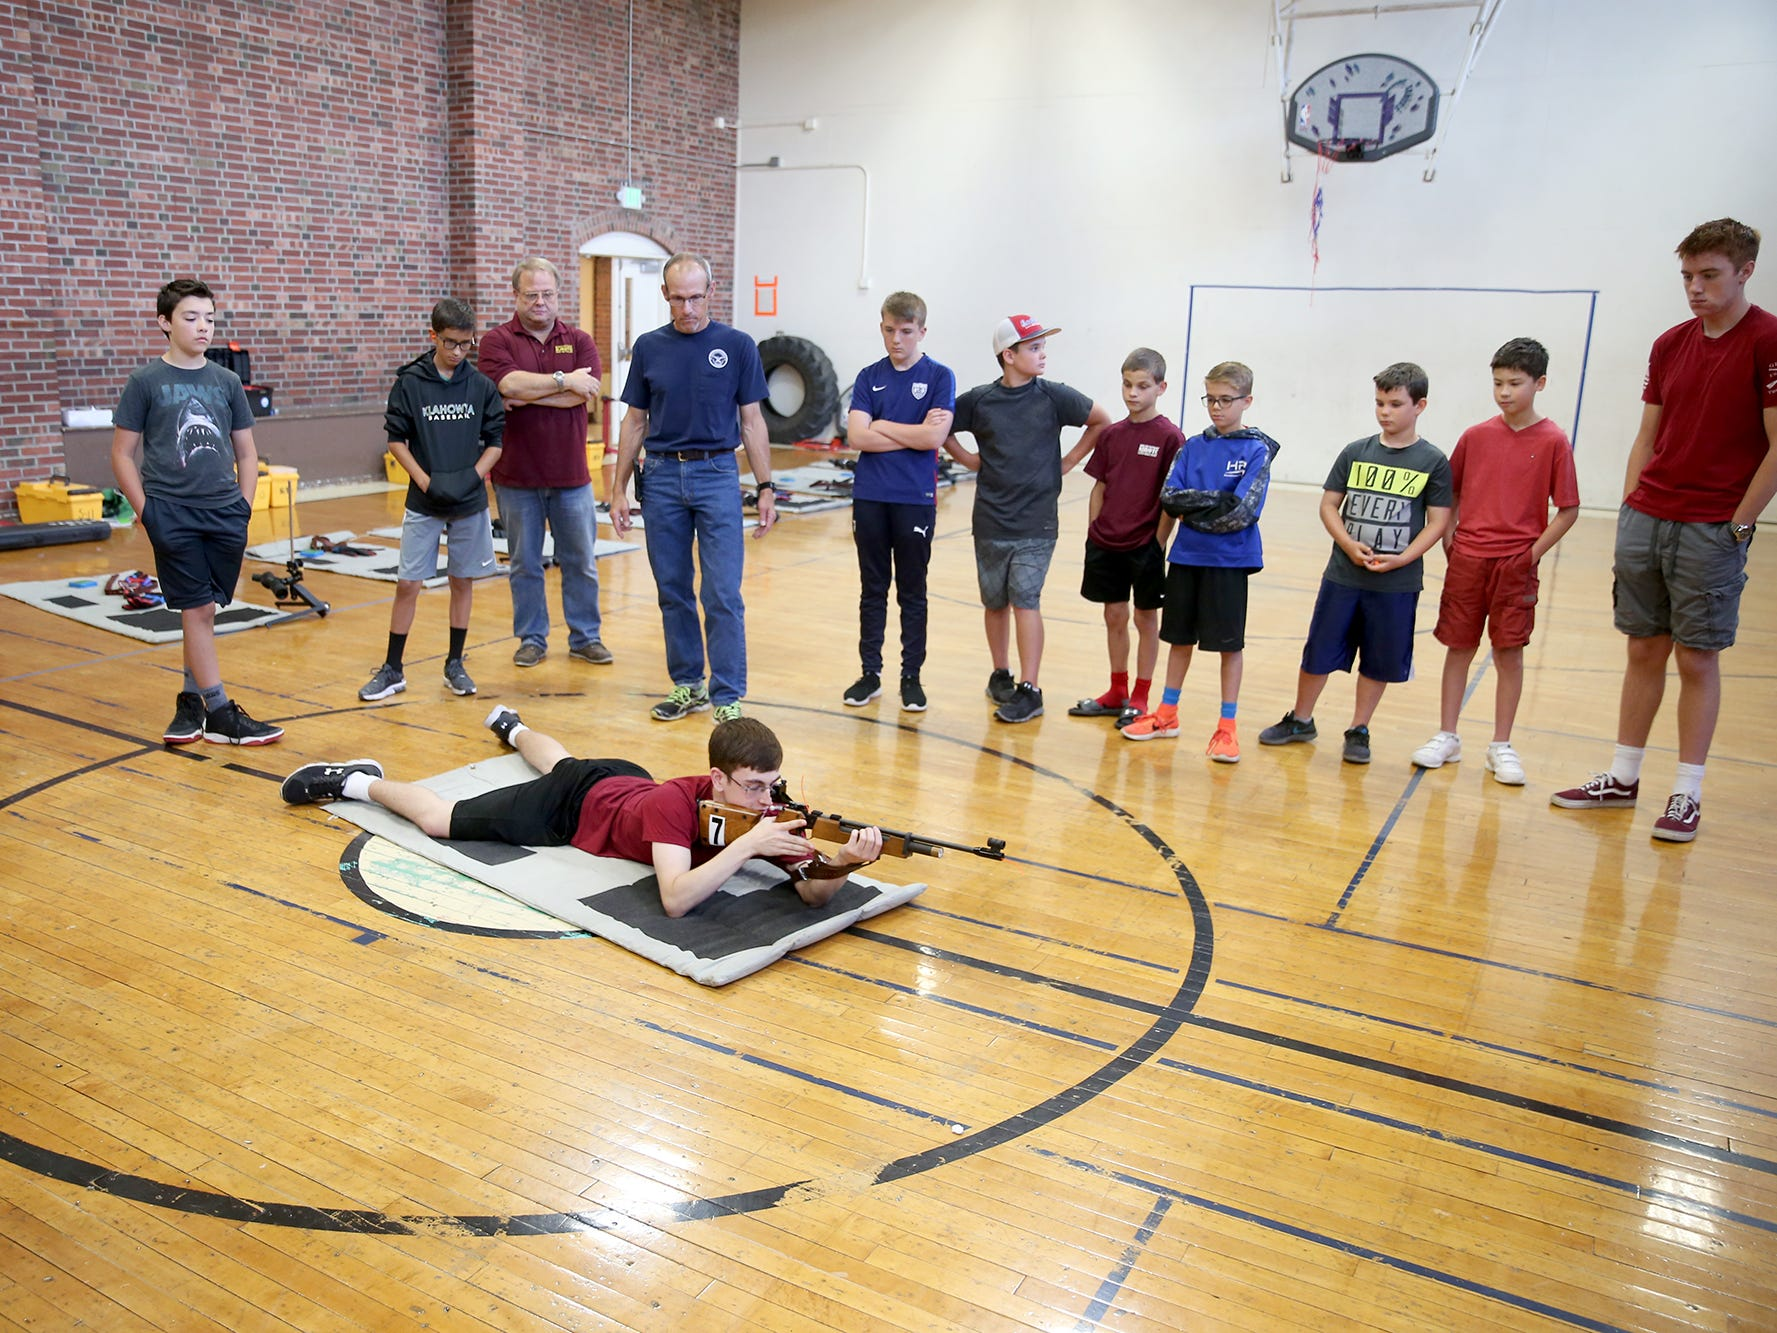 Camp instructor aide Sean Webb, 16, shows students the correct prone shooting position at the South Kitsap High School NJROTC Wolf Battalion Rifle Camp runs from August 8-10, at the National Guard Armory in Port Orchard.The camp teaches rifle safety, and shooting technics.